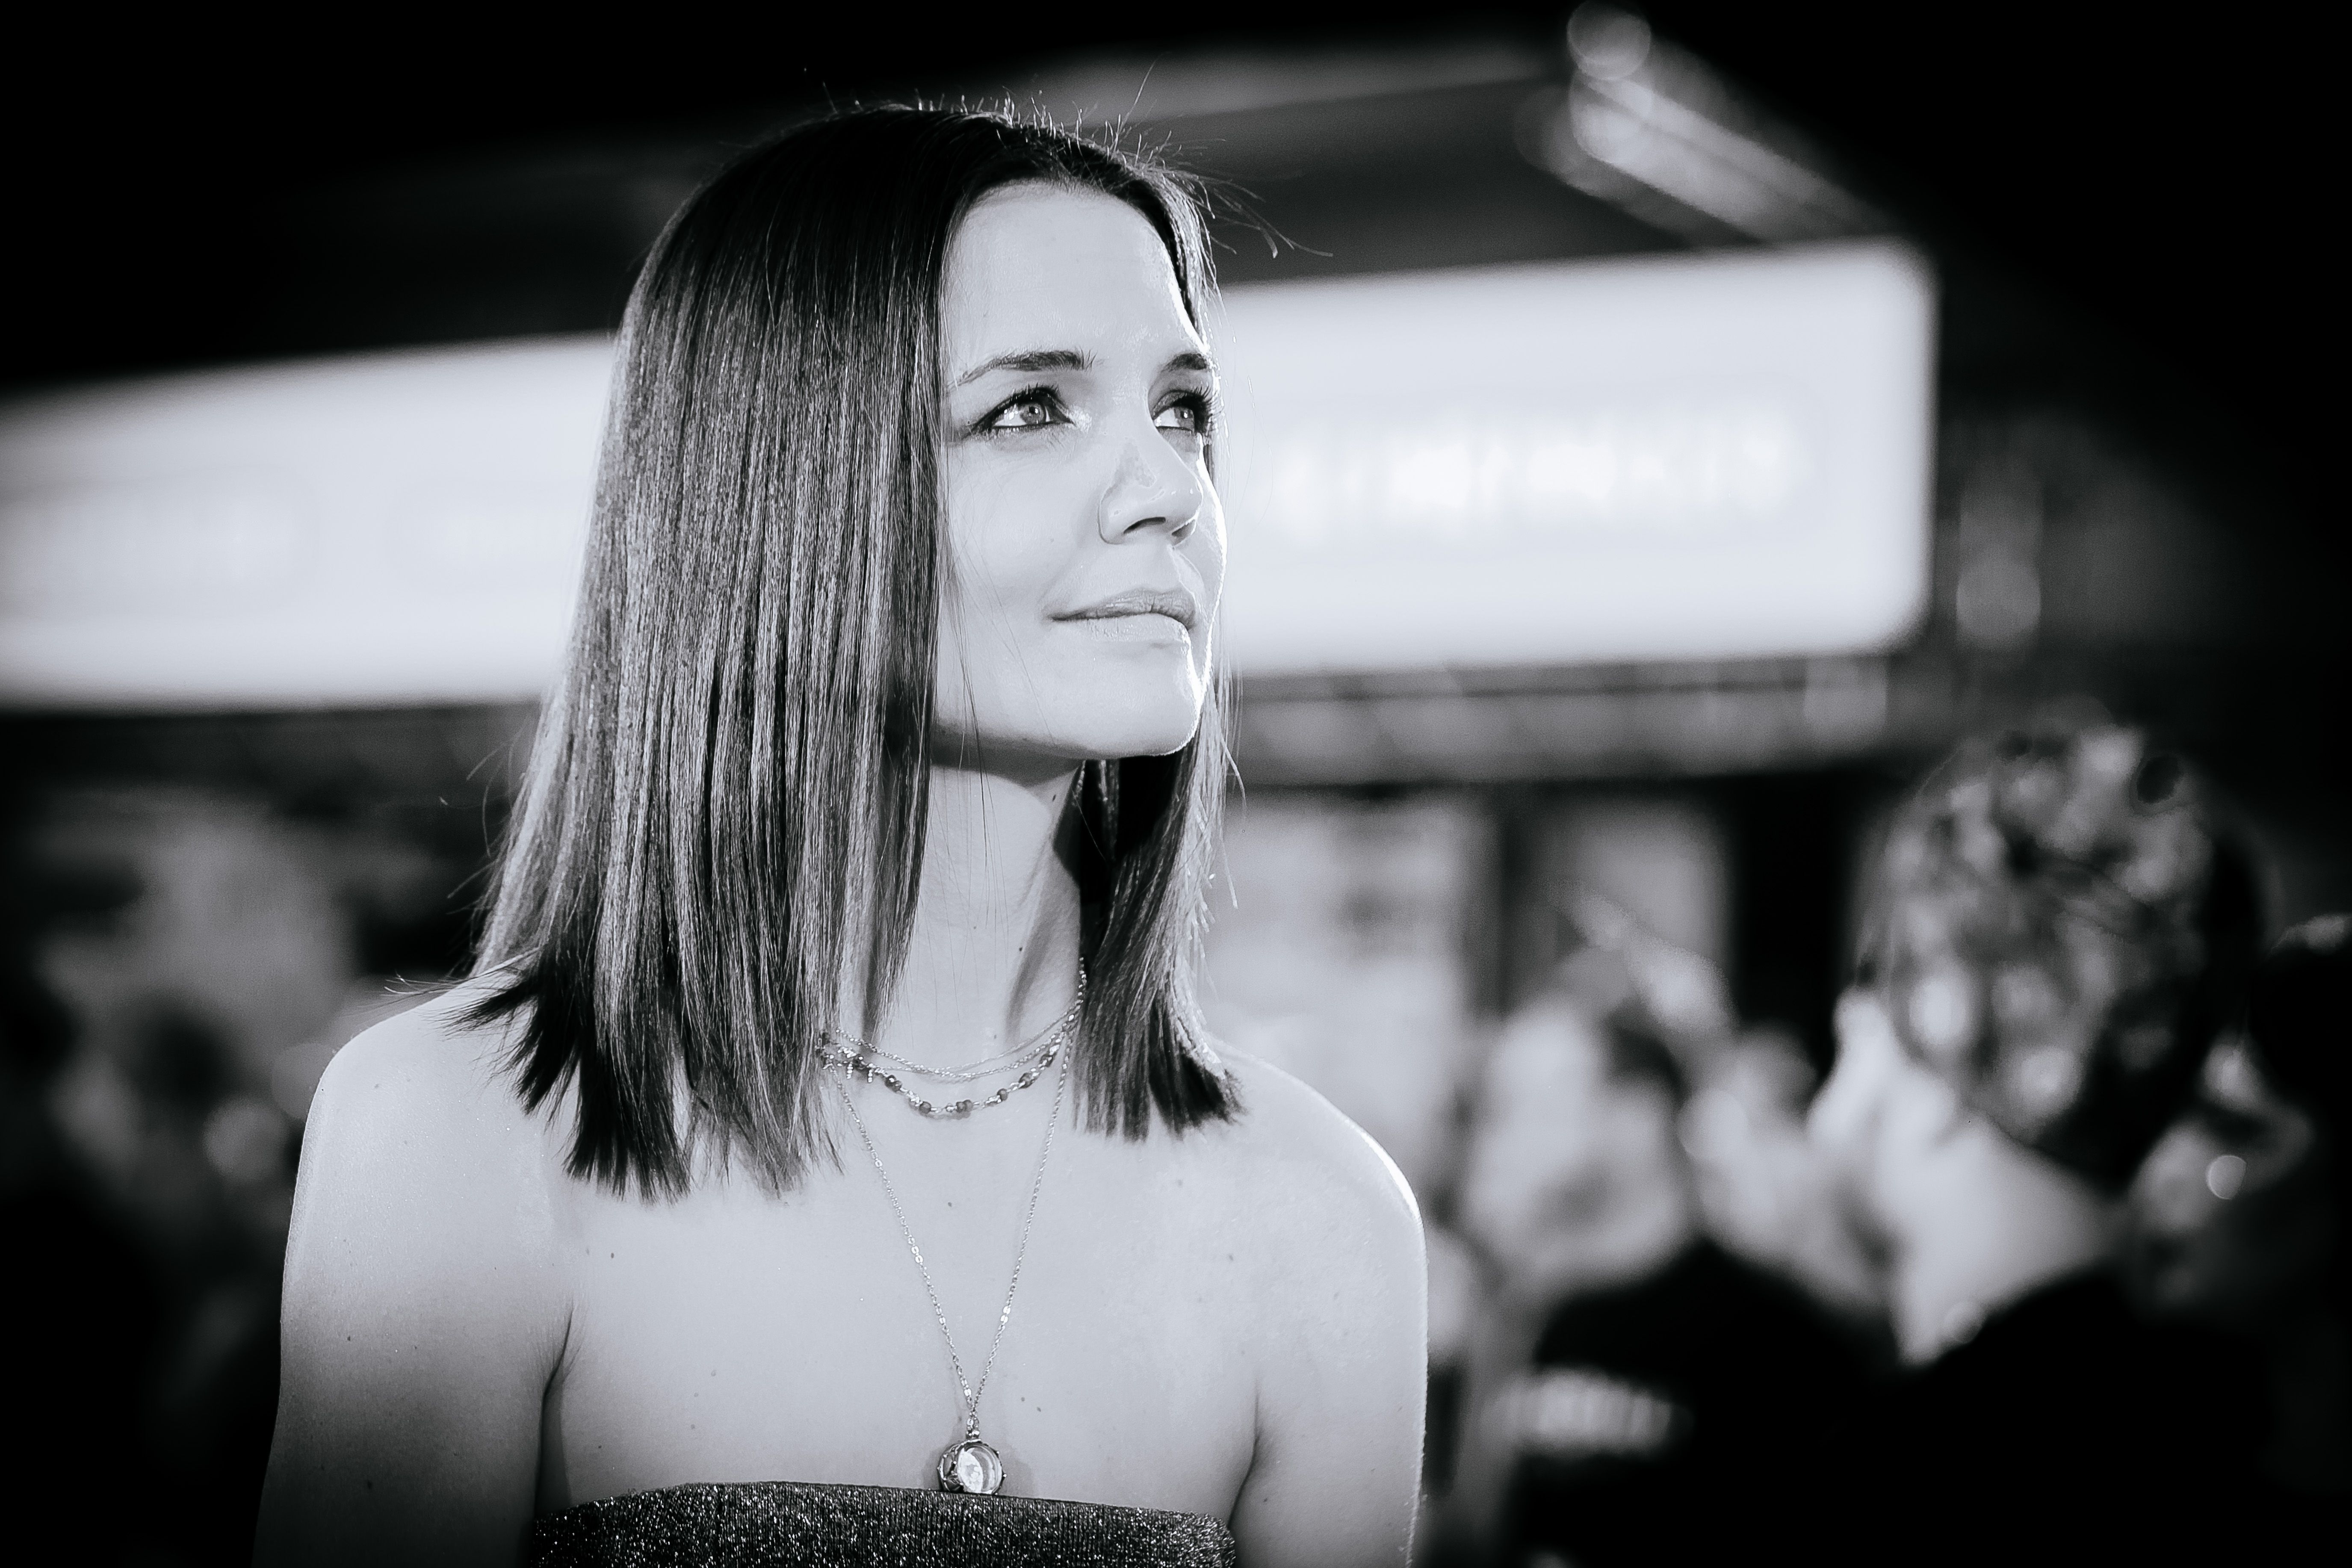 Katie Holmes Has Been Living Her Best Fashion Life Since Her Breakup From Jamie Foxx